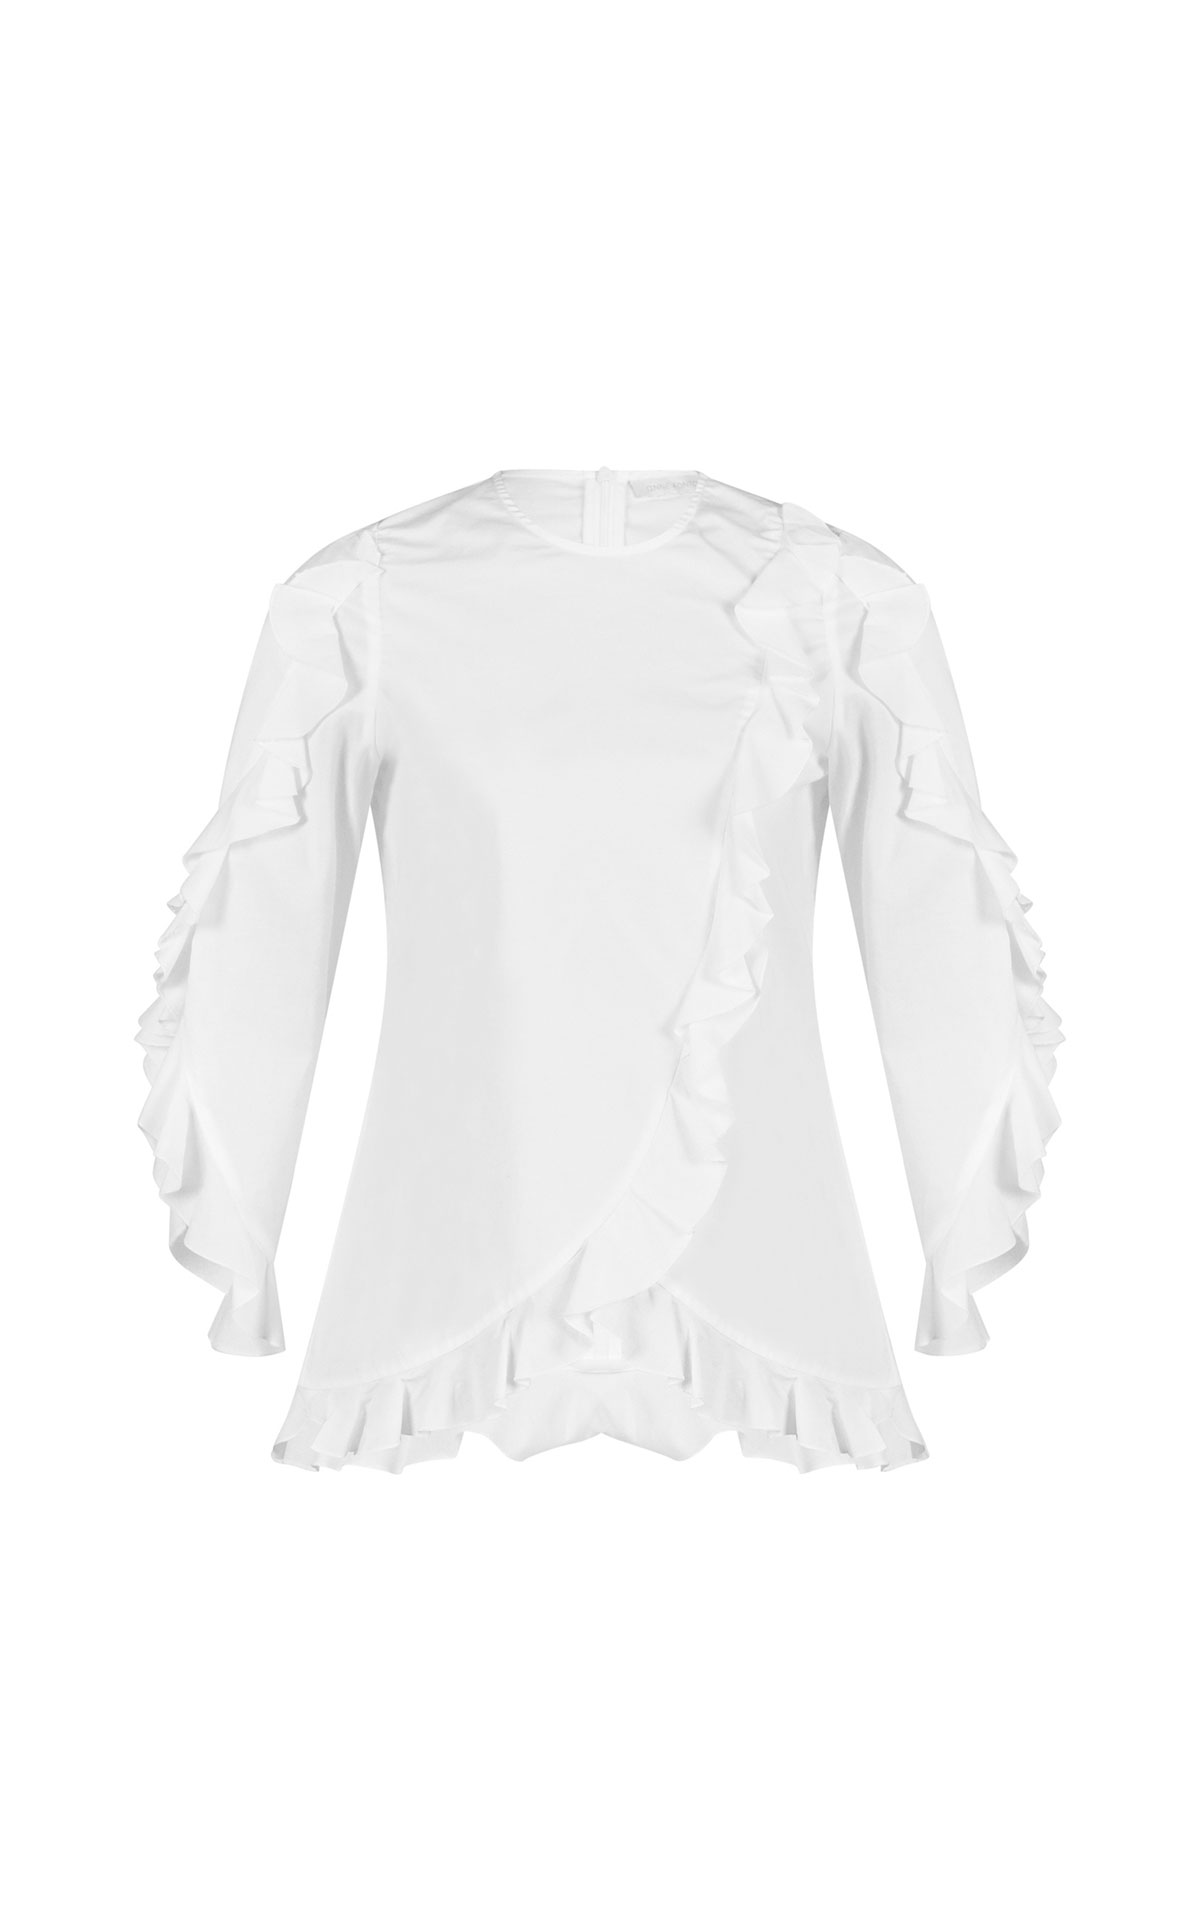 Anne Fontaine Lolita shirt from Bicester Village